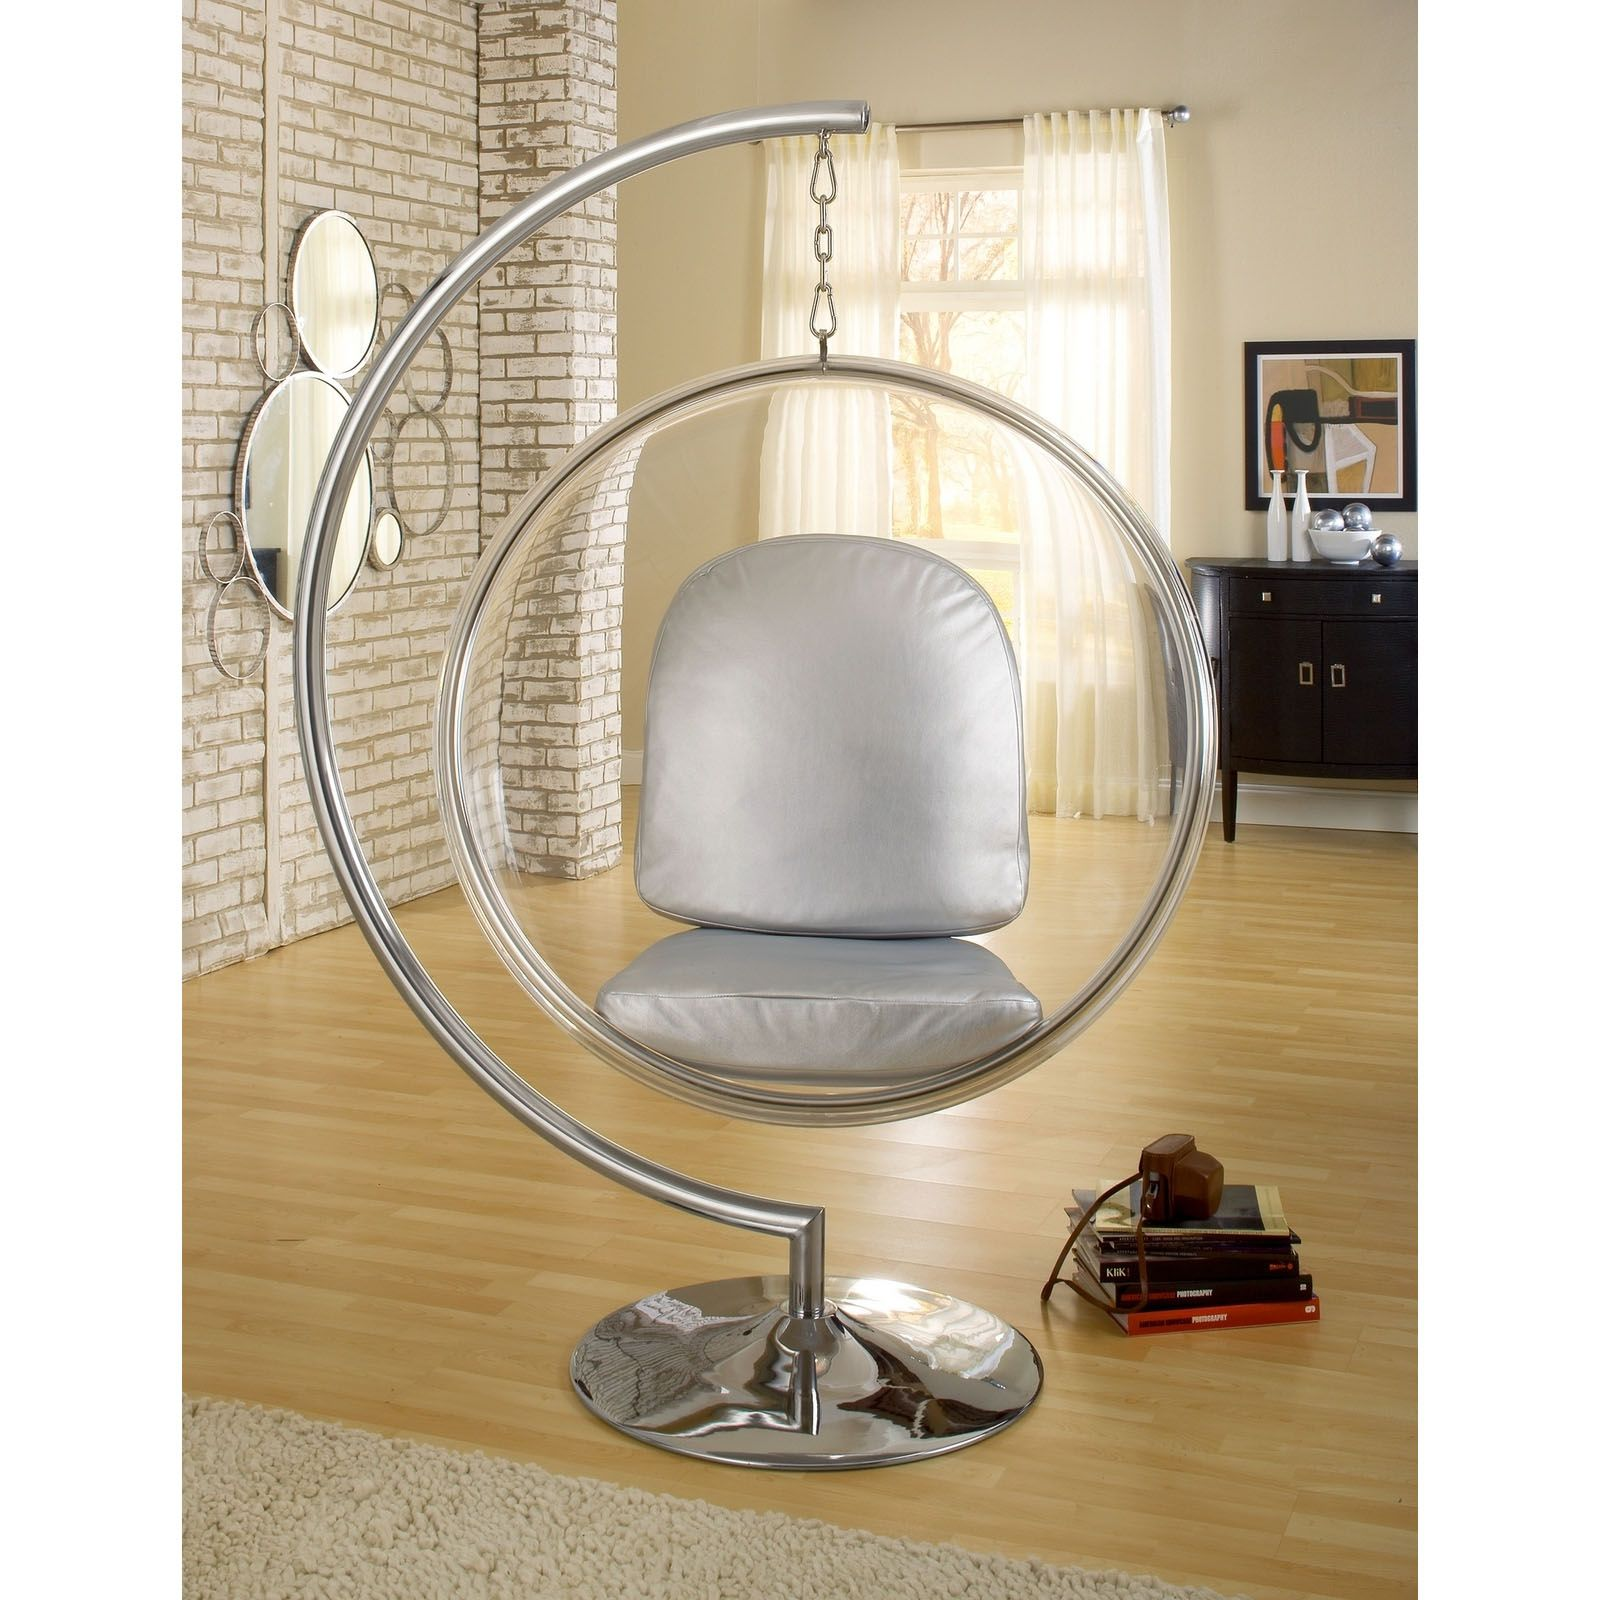 Hanging Chair Stand Only With Twin Sleeper Furniture And Decor For The Modern Lifestyle In 2018 Orbit Dotandbo Com Apparently I M Feeling Very 70s Today